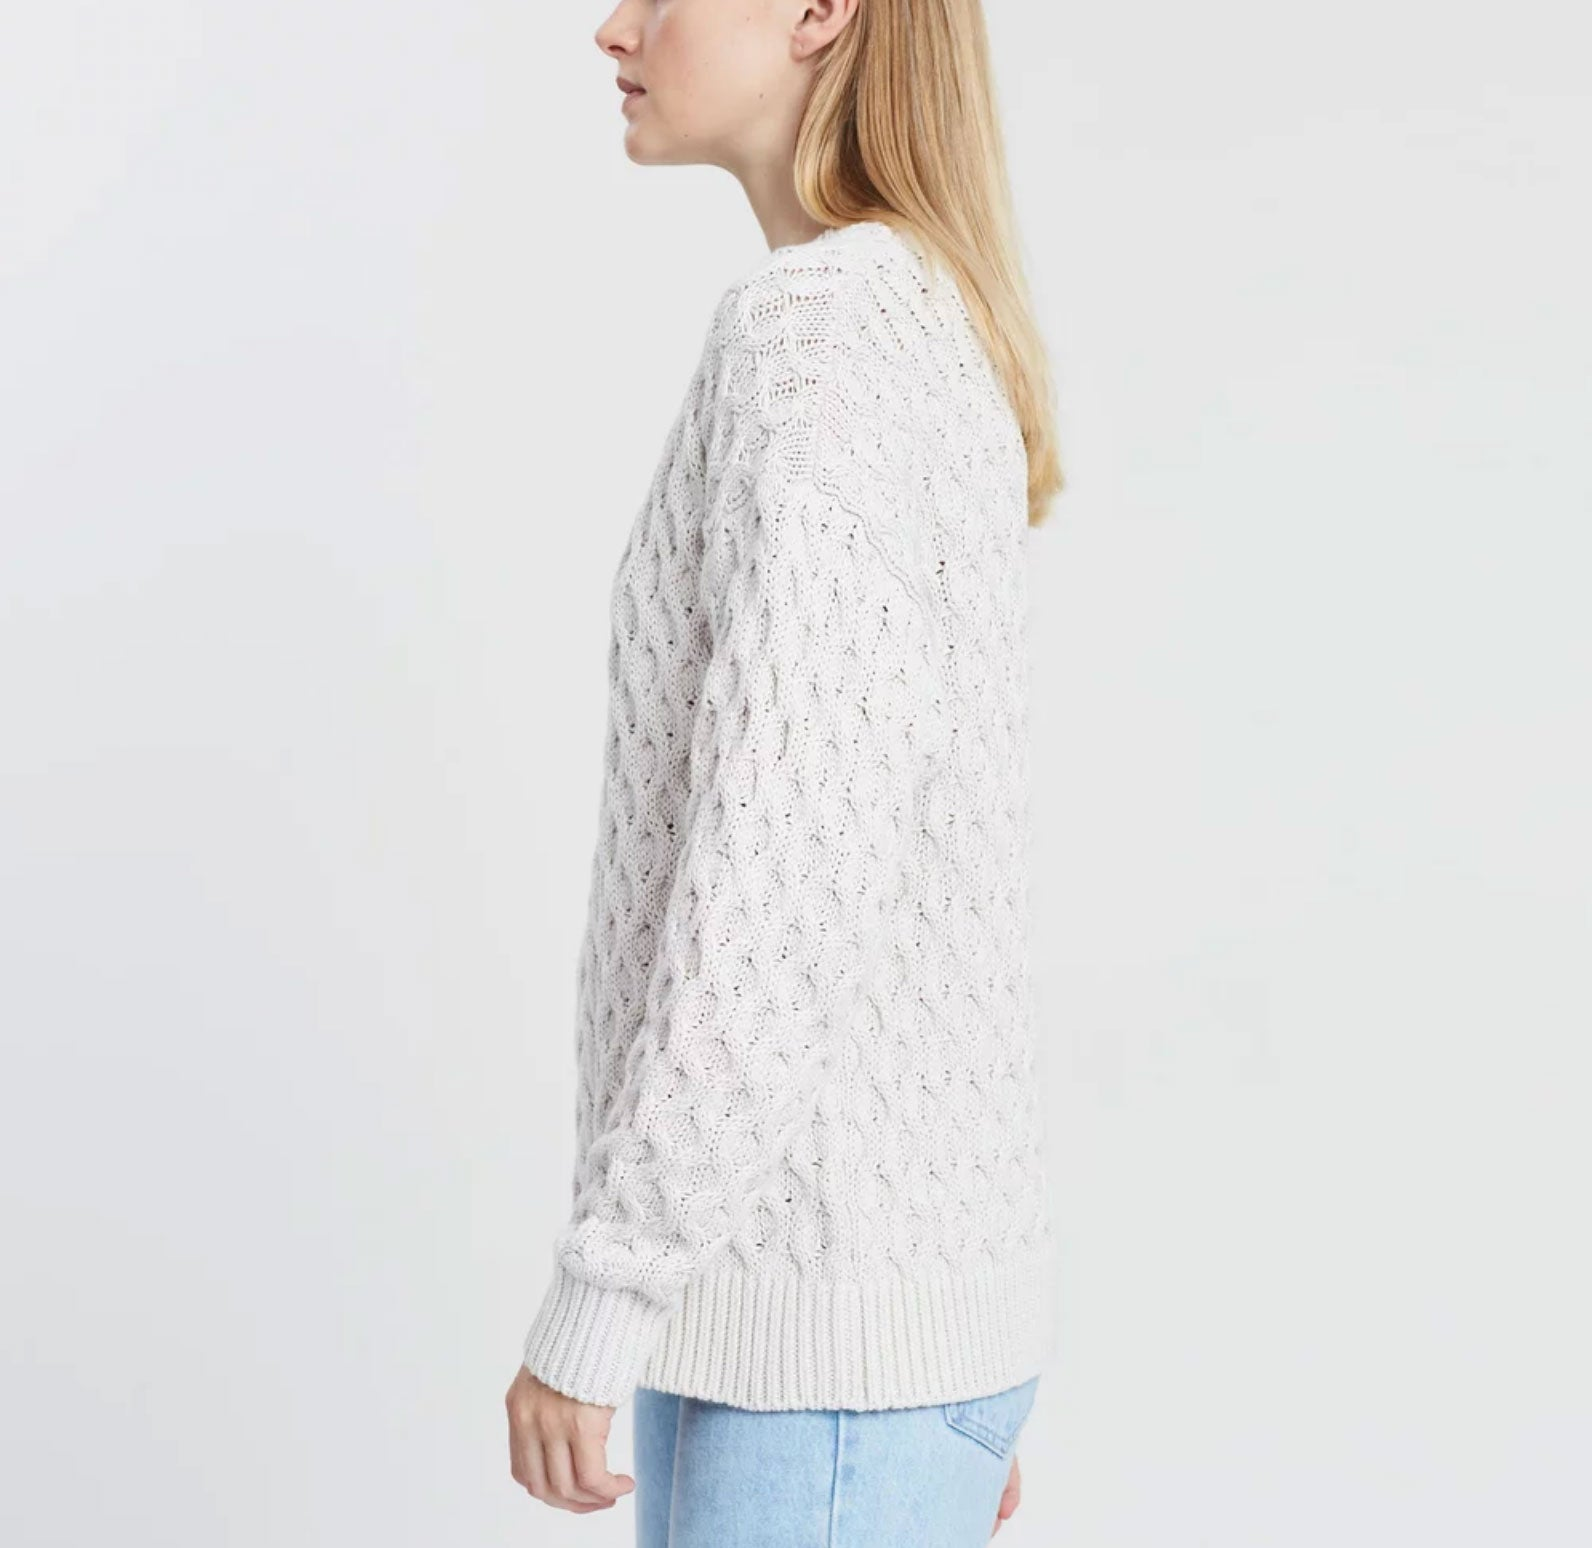 Assembly Label - White cotton cable knit sweater jumper